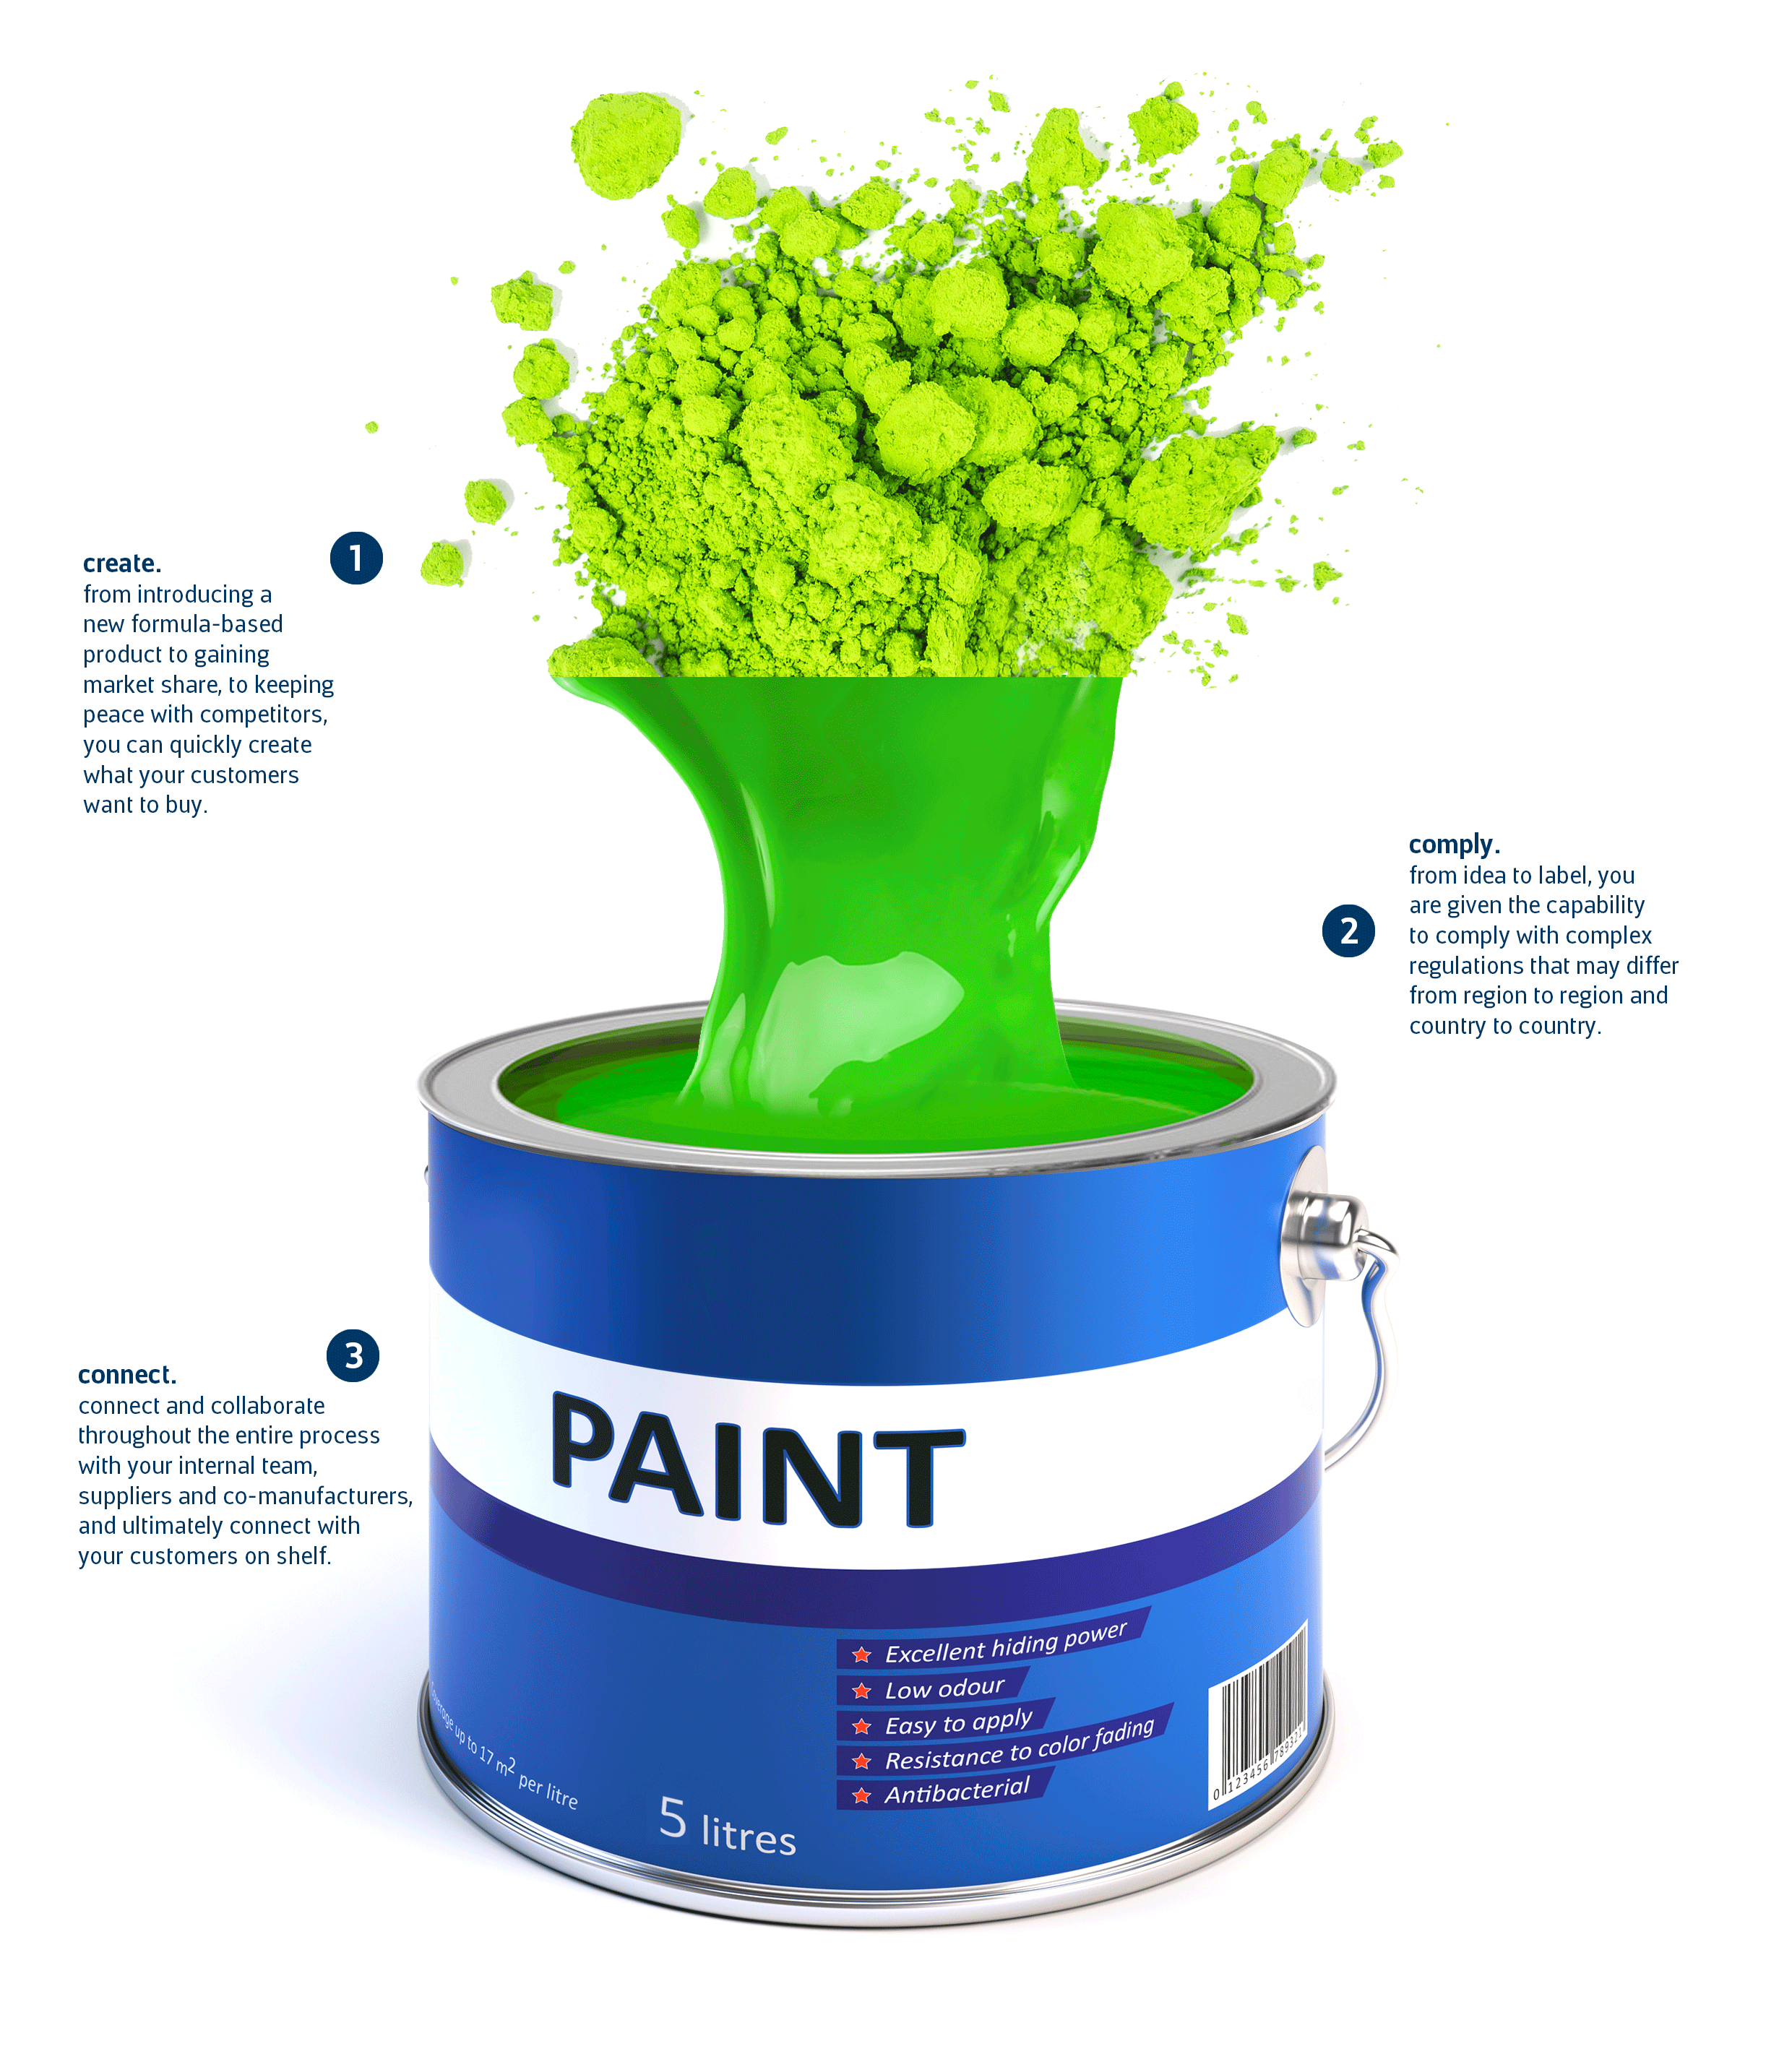 Paint (Safety Data Sheets Software)